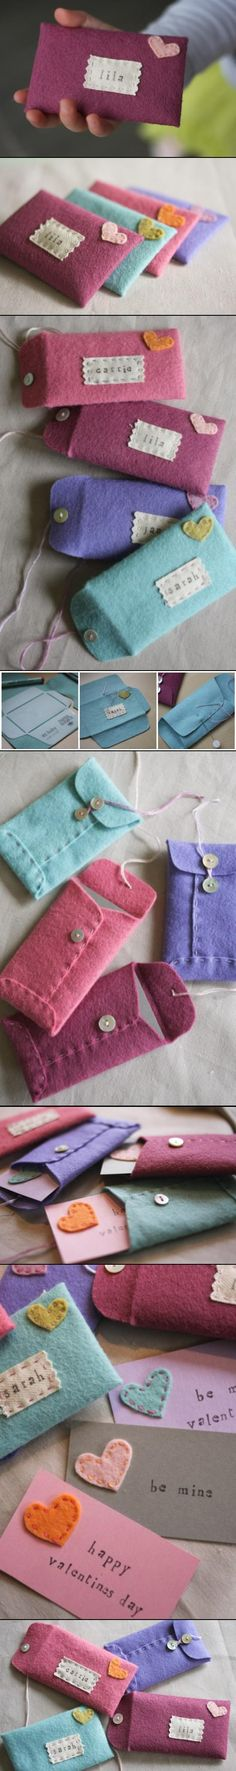 {Stamped with love} Embroidered Felt Envelopes